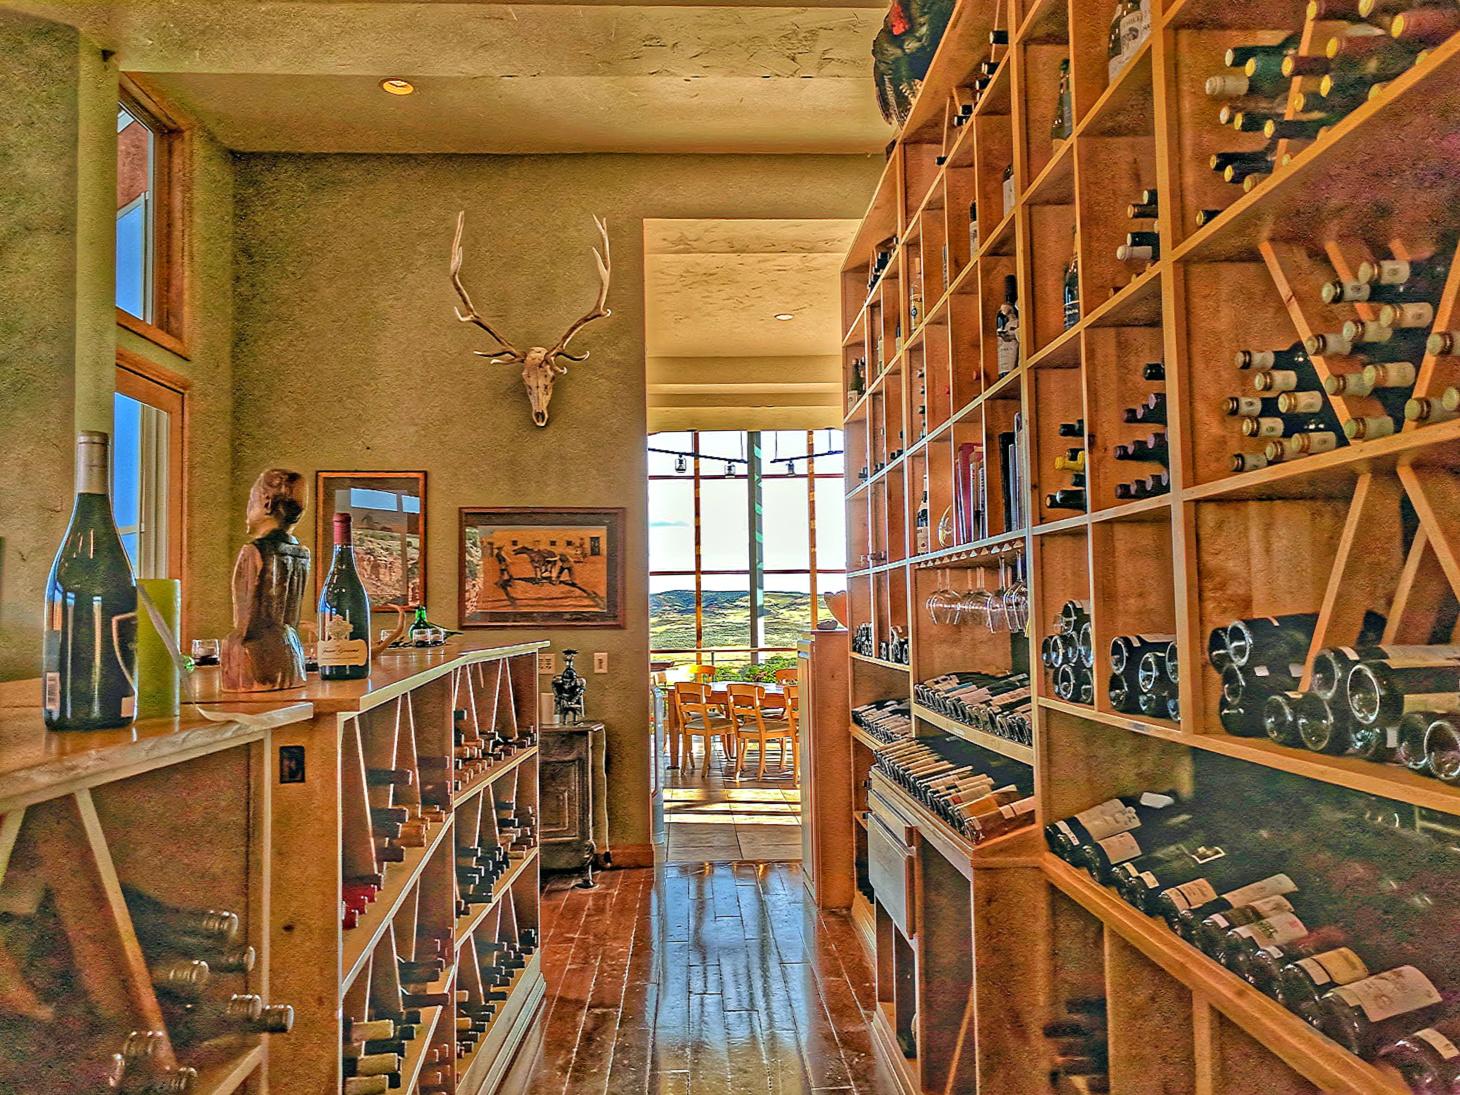 Wild West Vacation in style. Wine selection at Red Reflet Ranch in Wyoming.